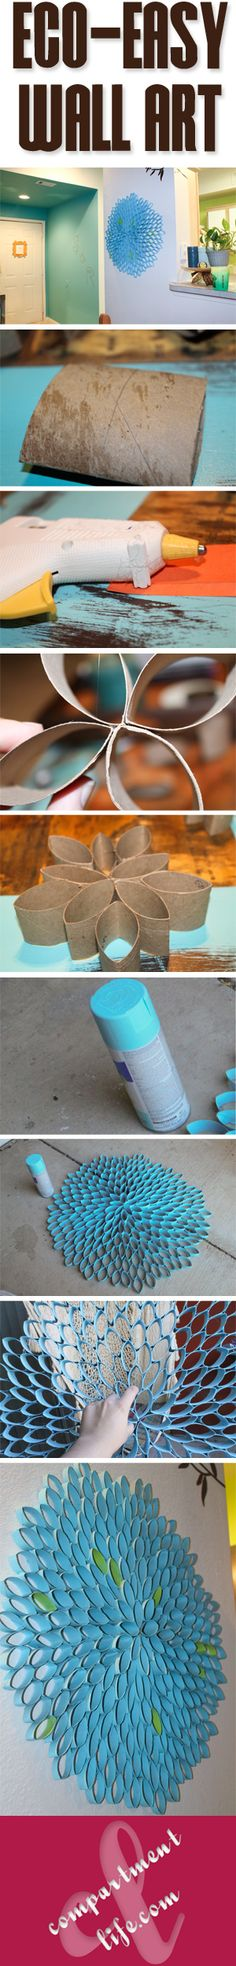 How to create a piece of wall art using toilet paper rolls and spray paint!